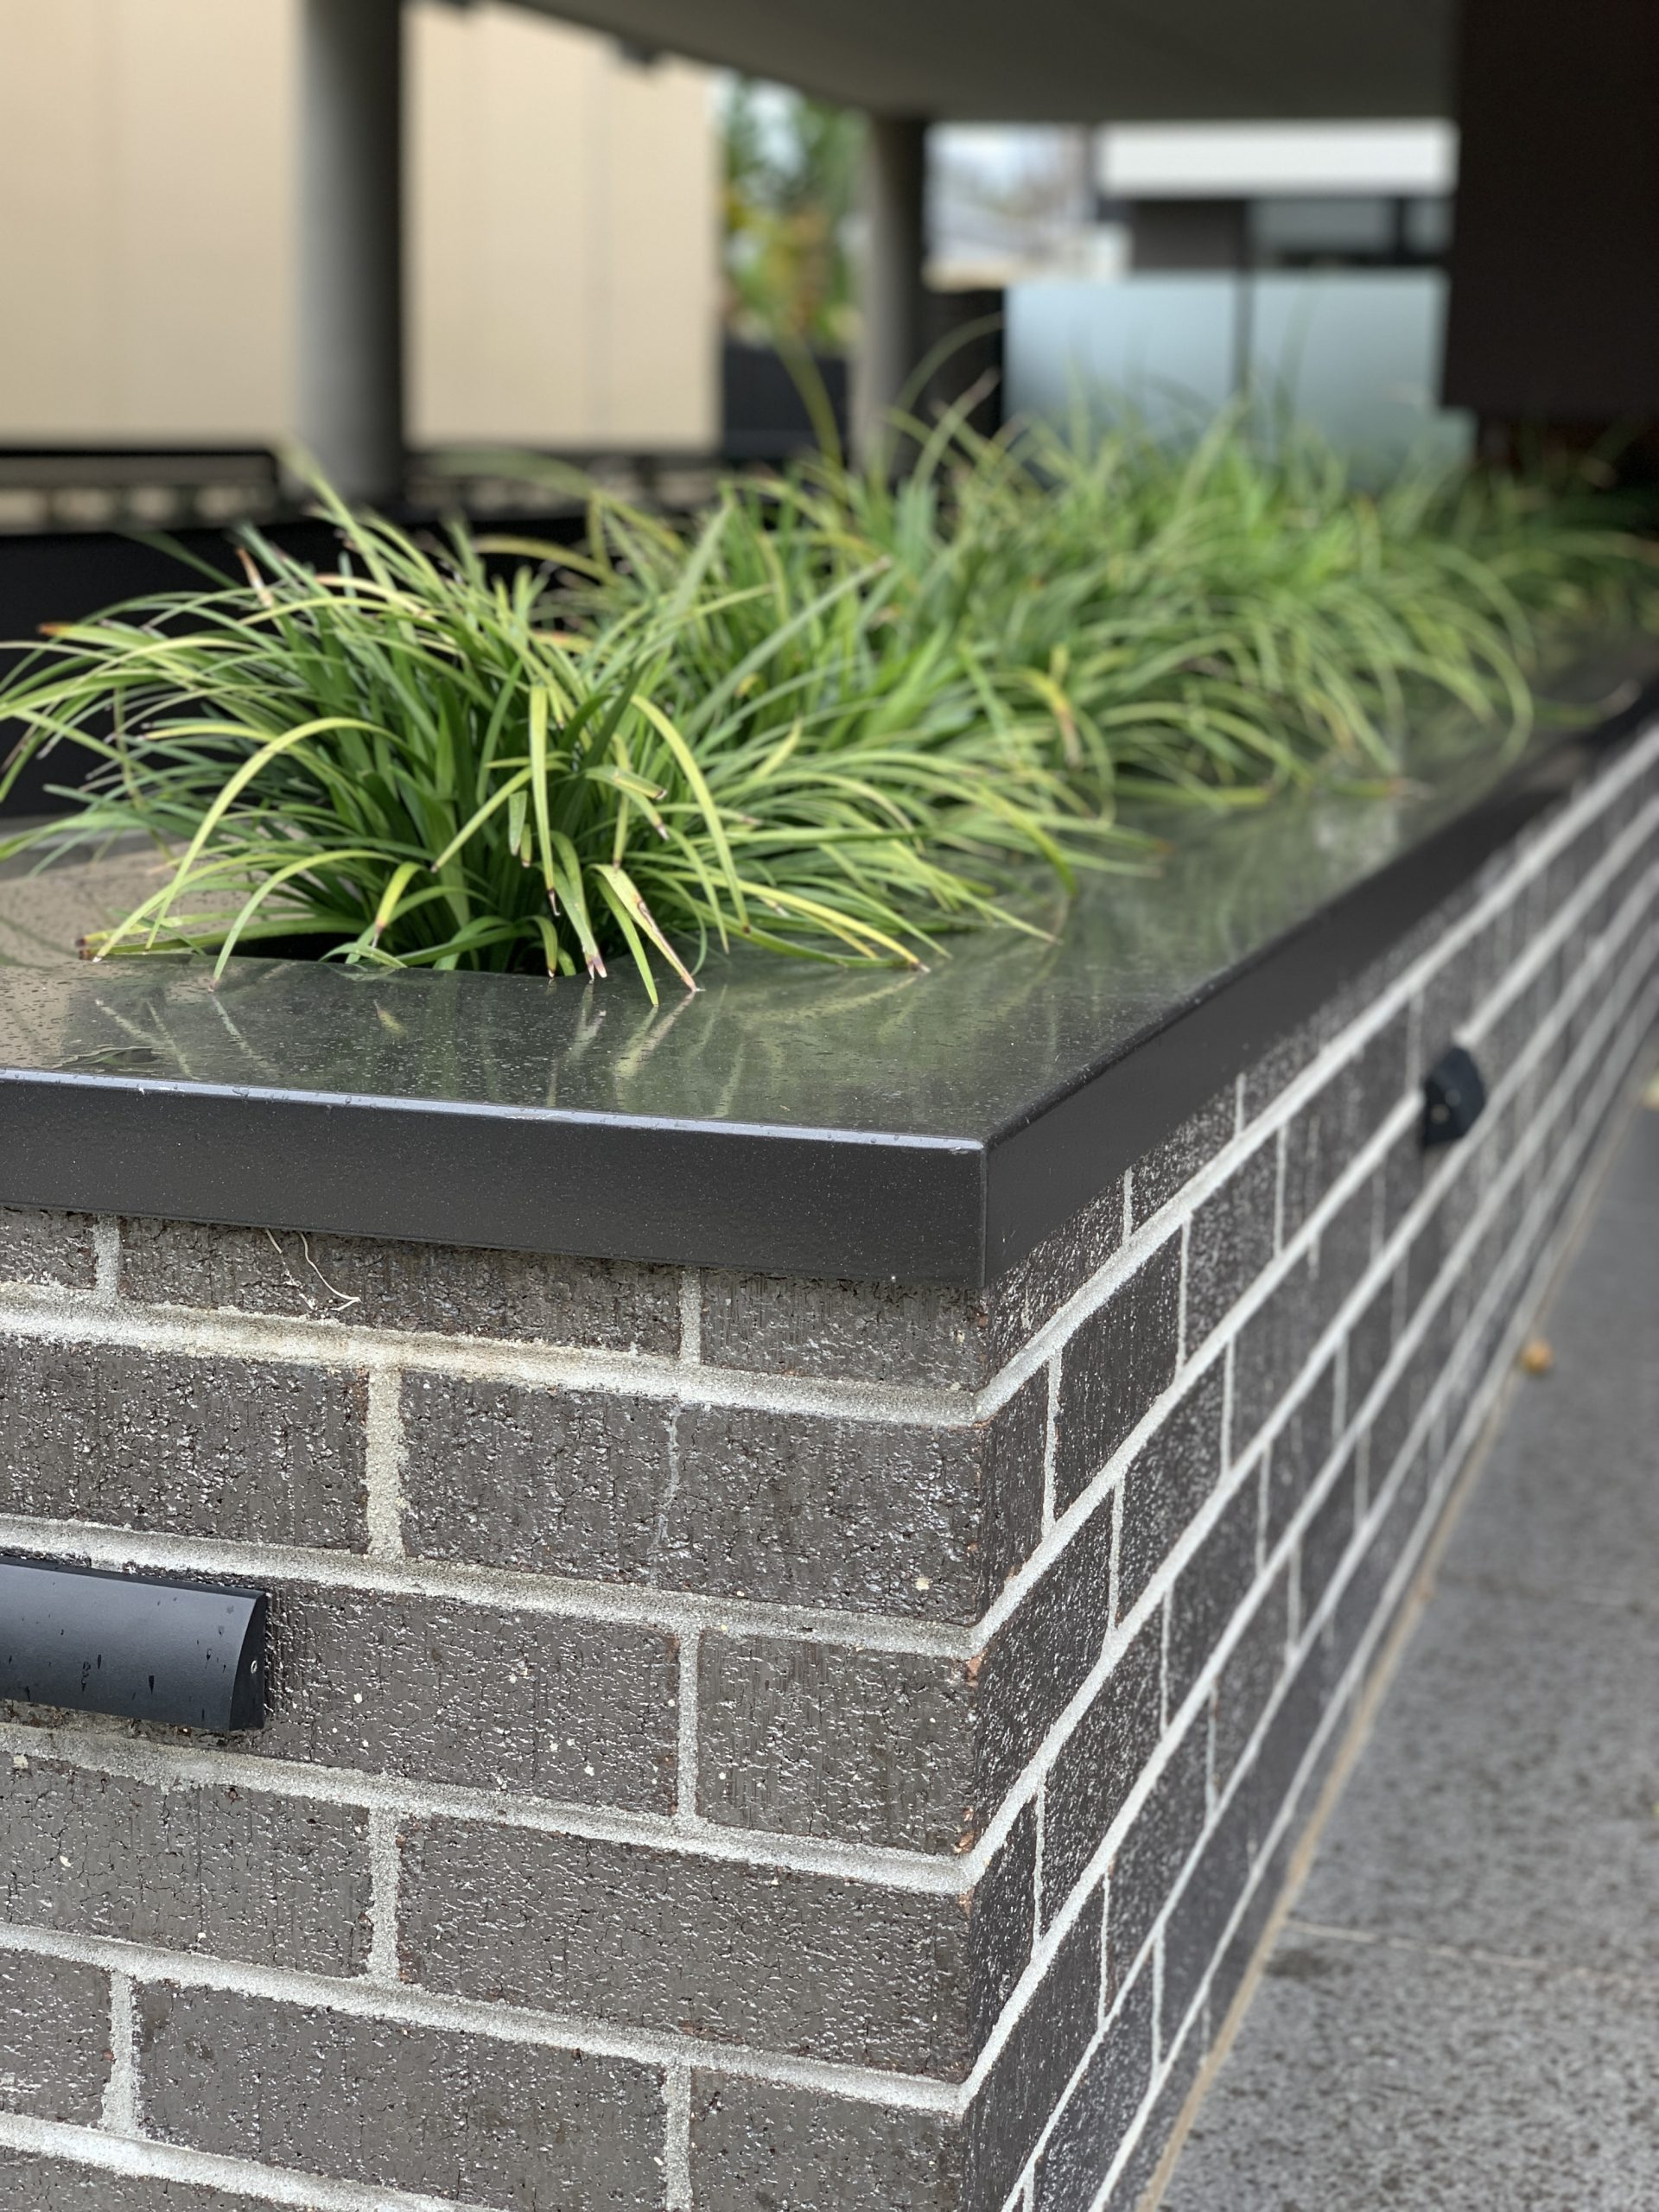 Feature brickwork used to build a planter box in Cairns with dark bricks and grey mortar and plants in the planter box